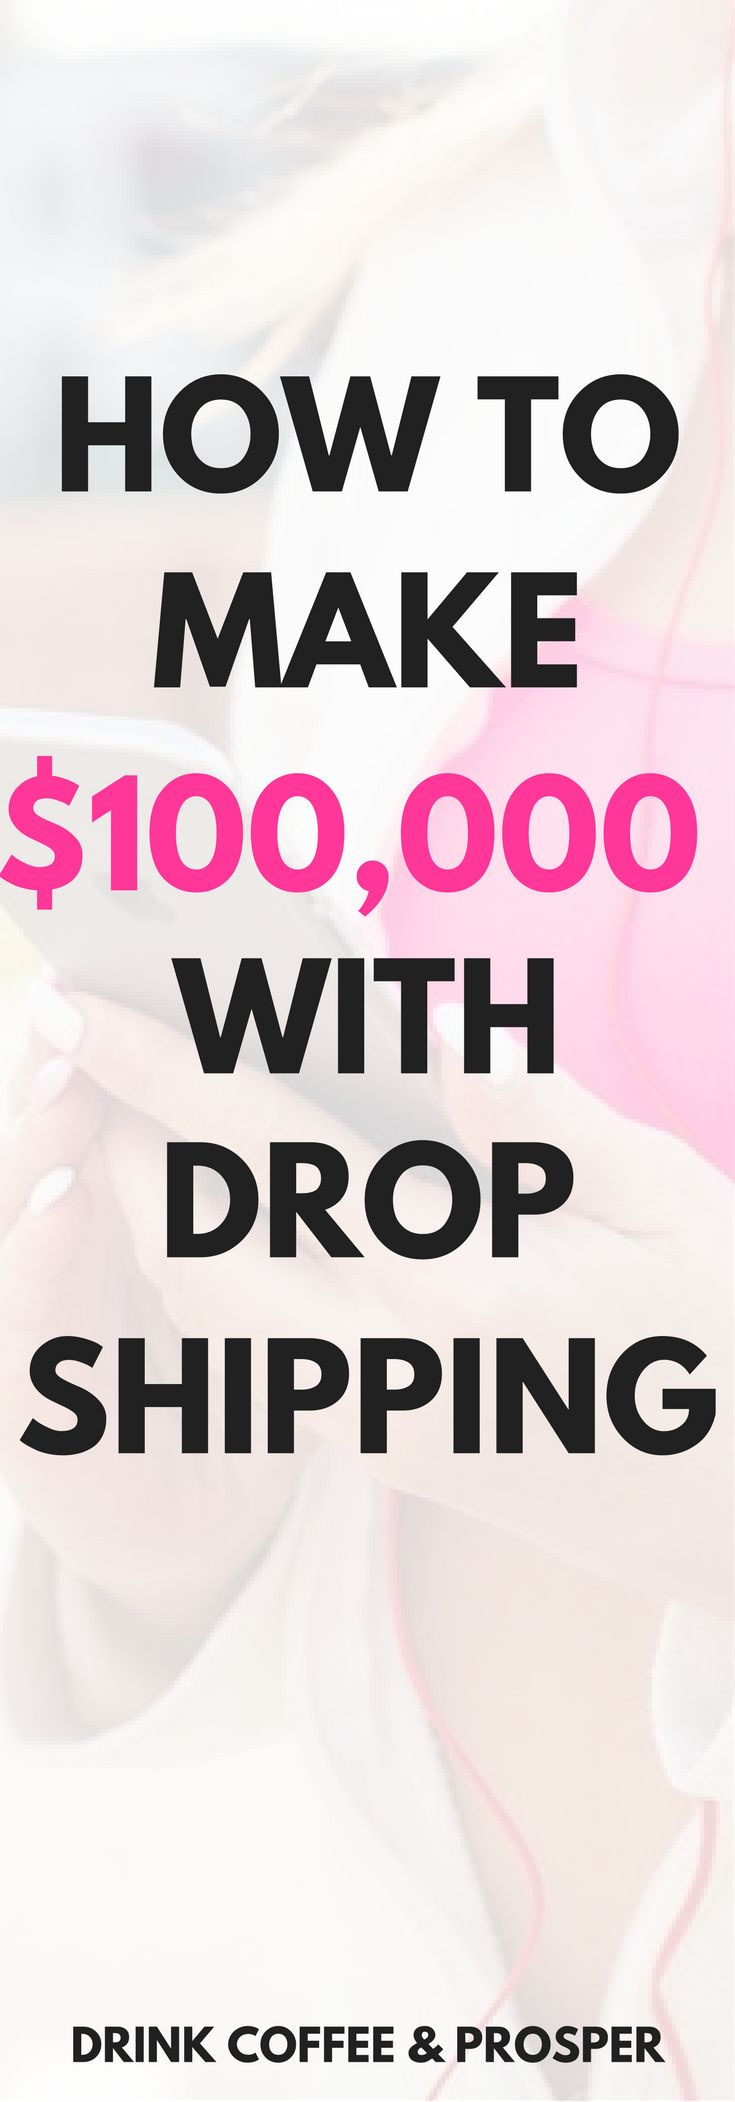 How you can make $100,000 with dropshipping